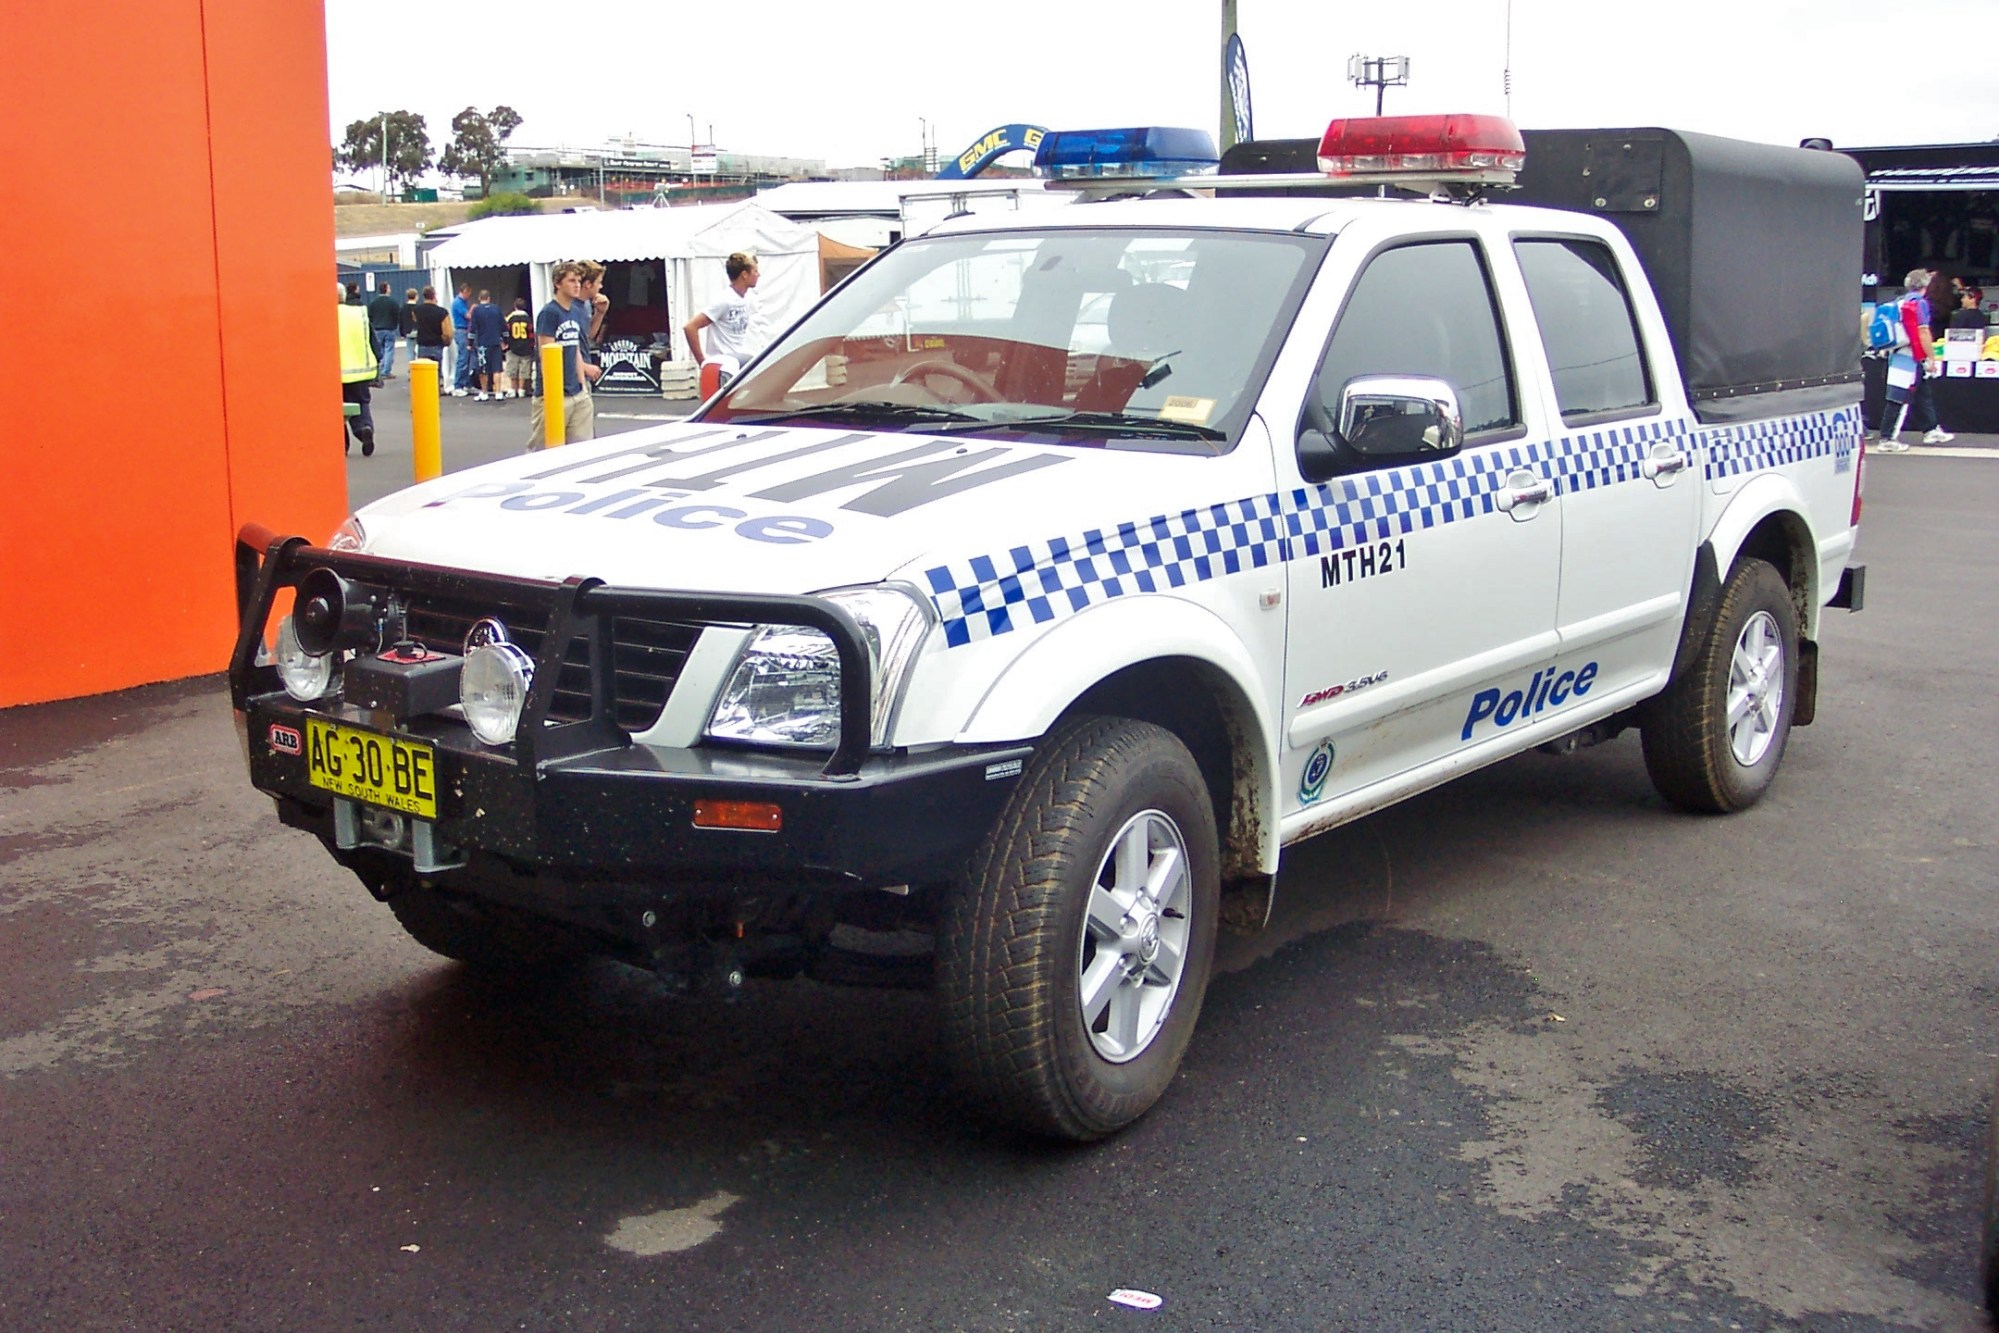 hight resolution of file 2005 holden ra rodeo lt paddy wagon nsw police 5498538468 jpg